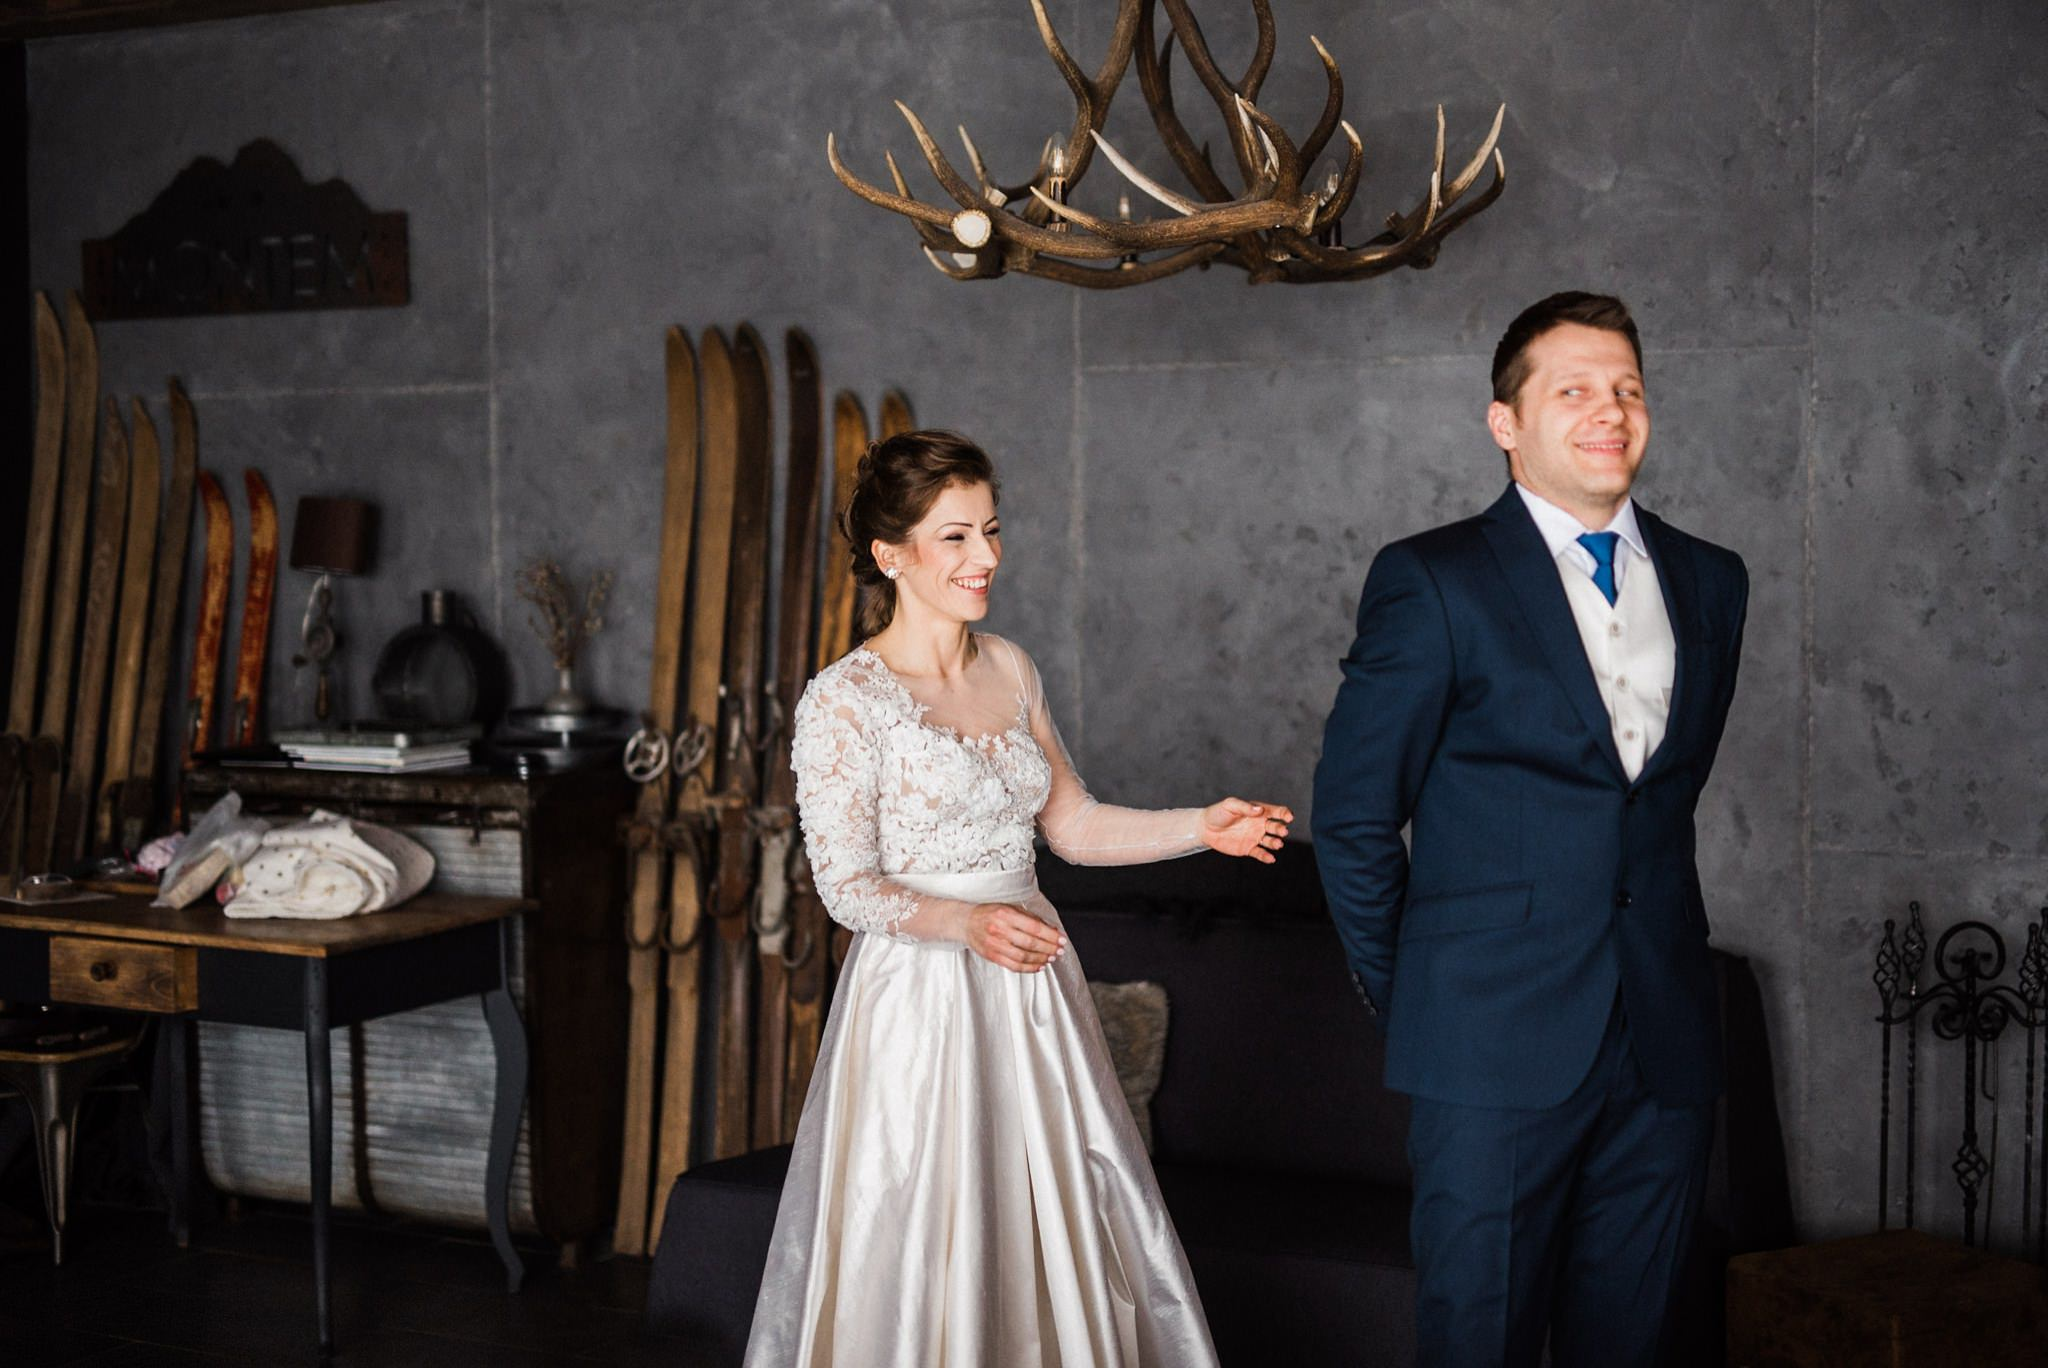 Charming Winter Wedding With Natural Decor